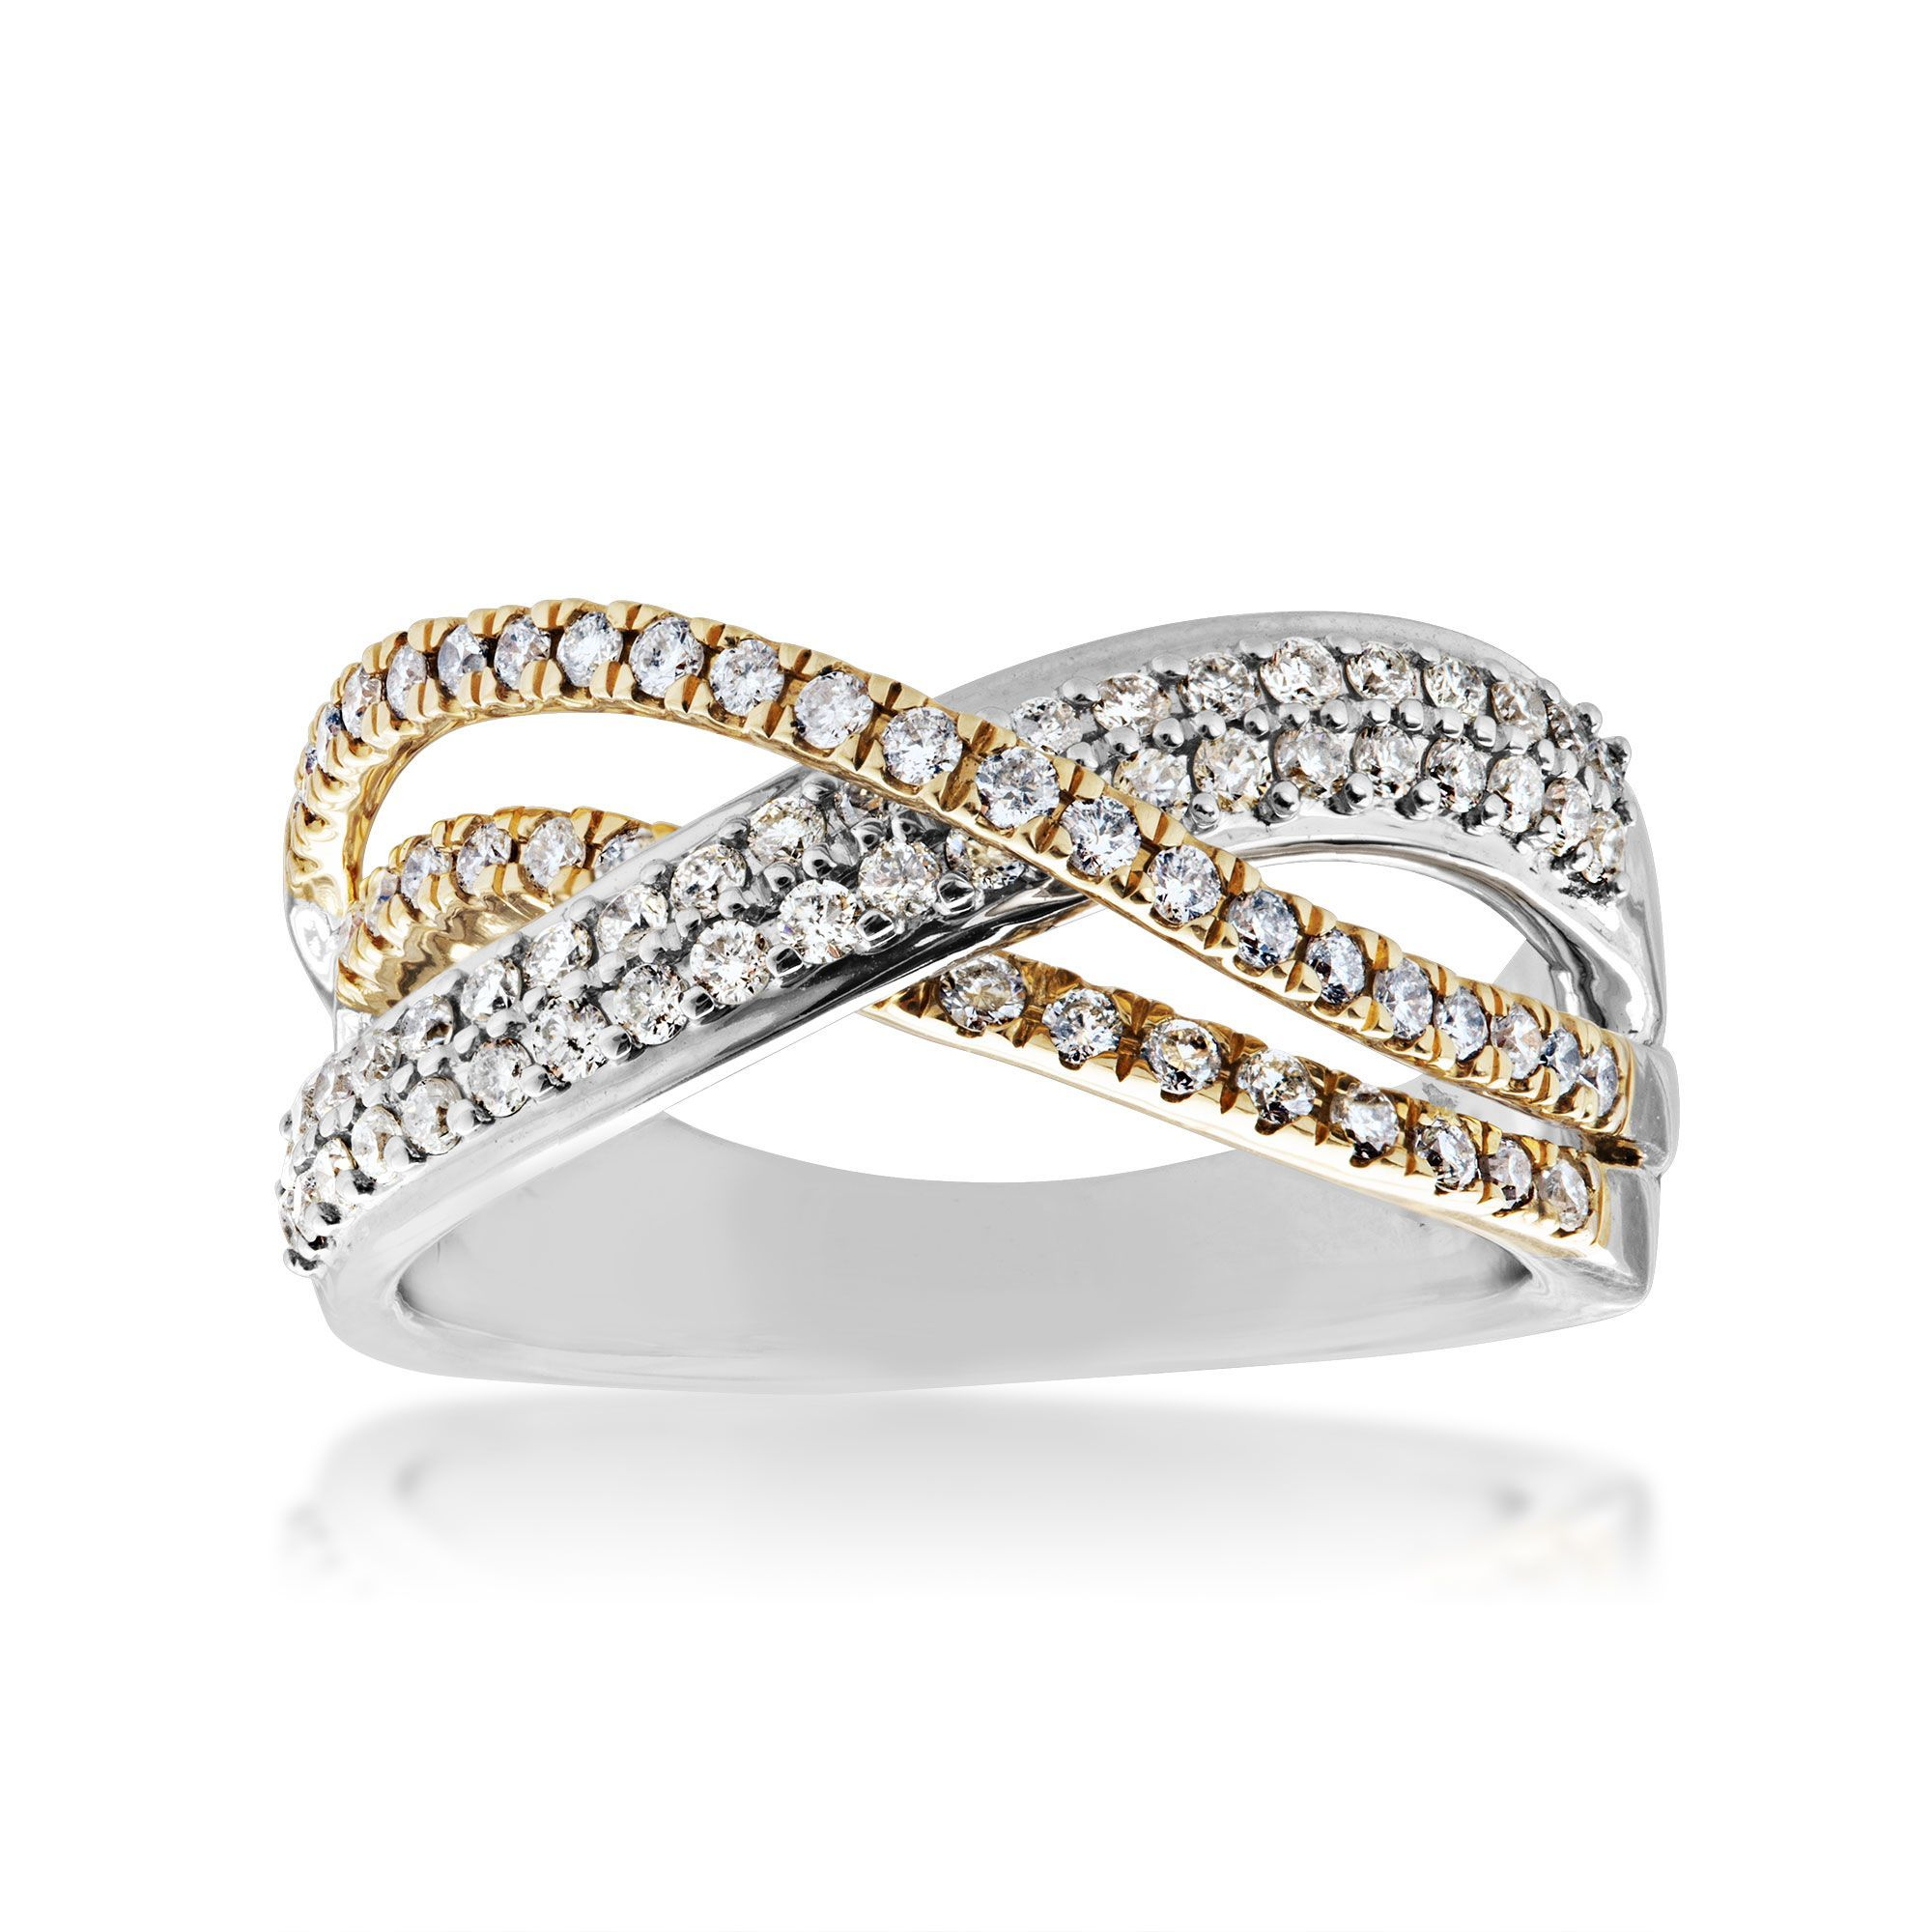 3/4 ct. tw. Curved Crisscross Diamond Anniversary Band in